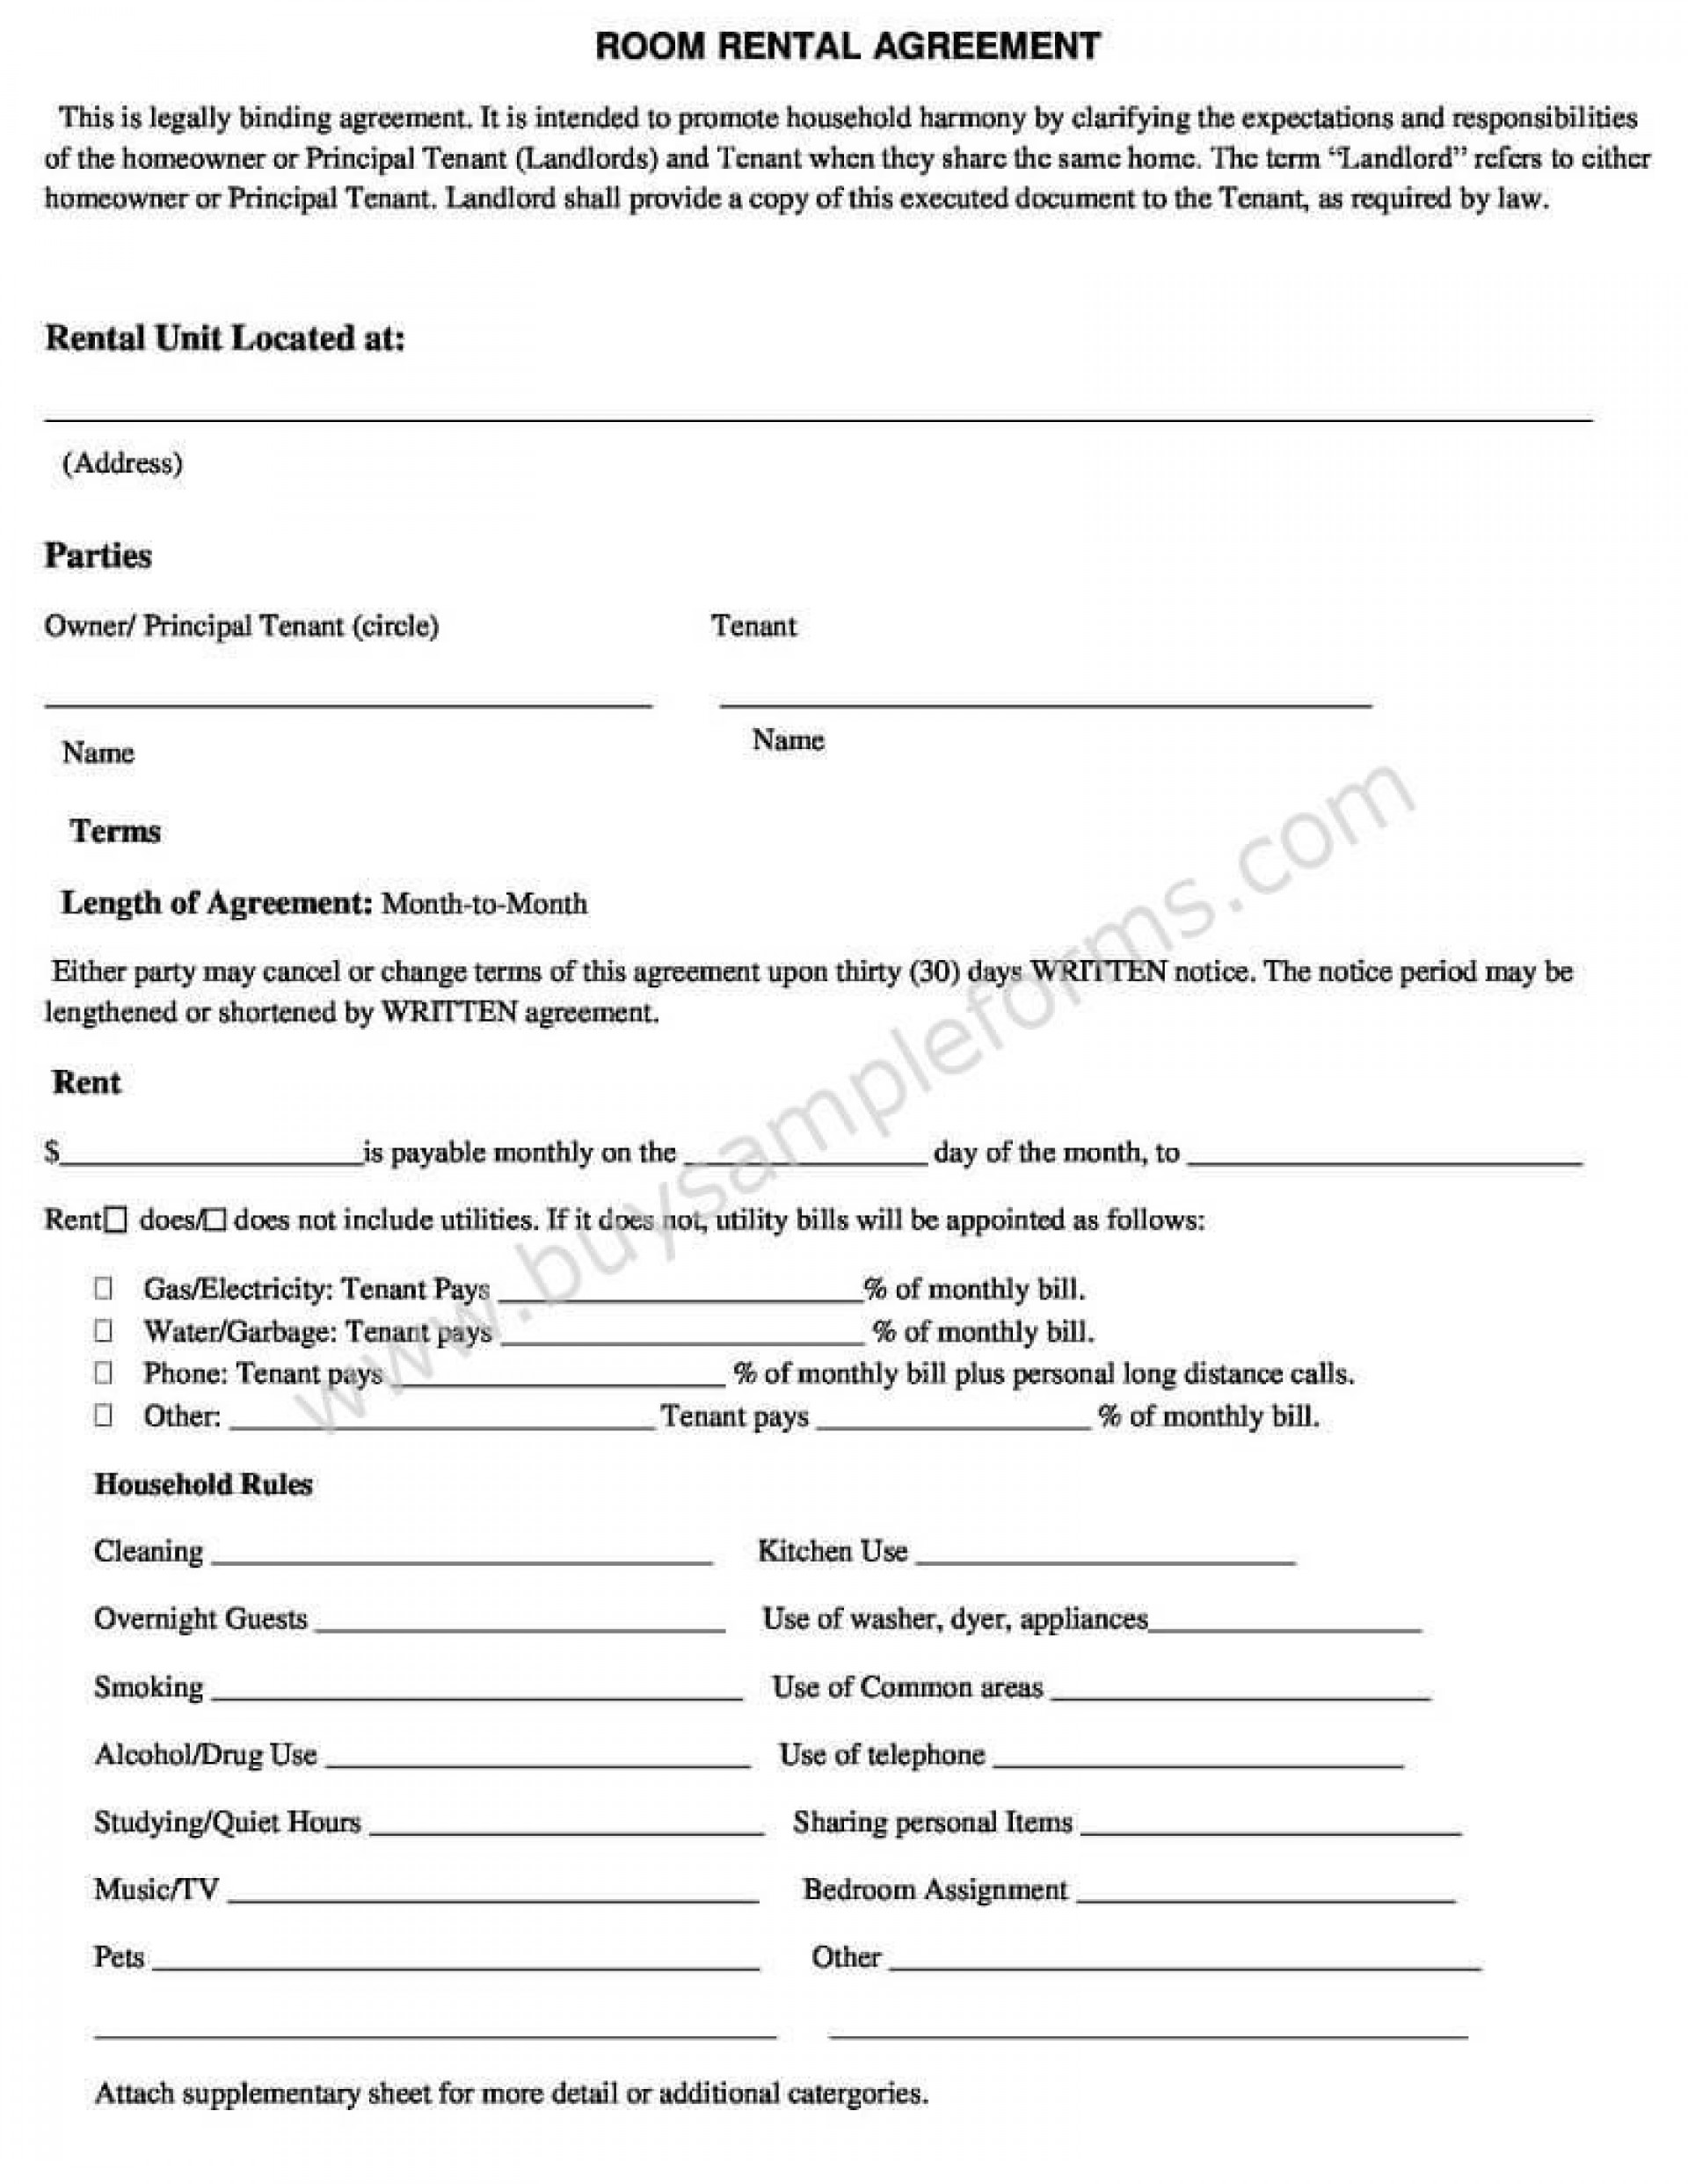 009 Dreaded Rental Agreement Template Word Free Photo  Tenancy Shorthold1920